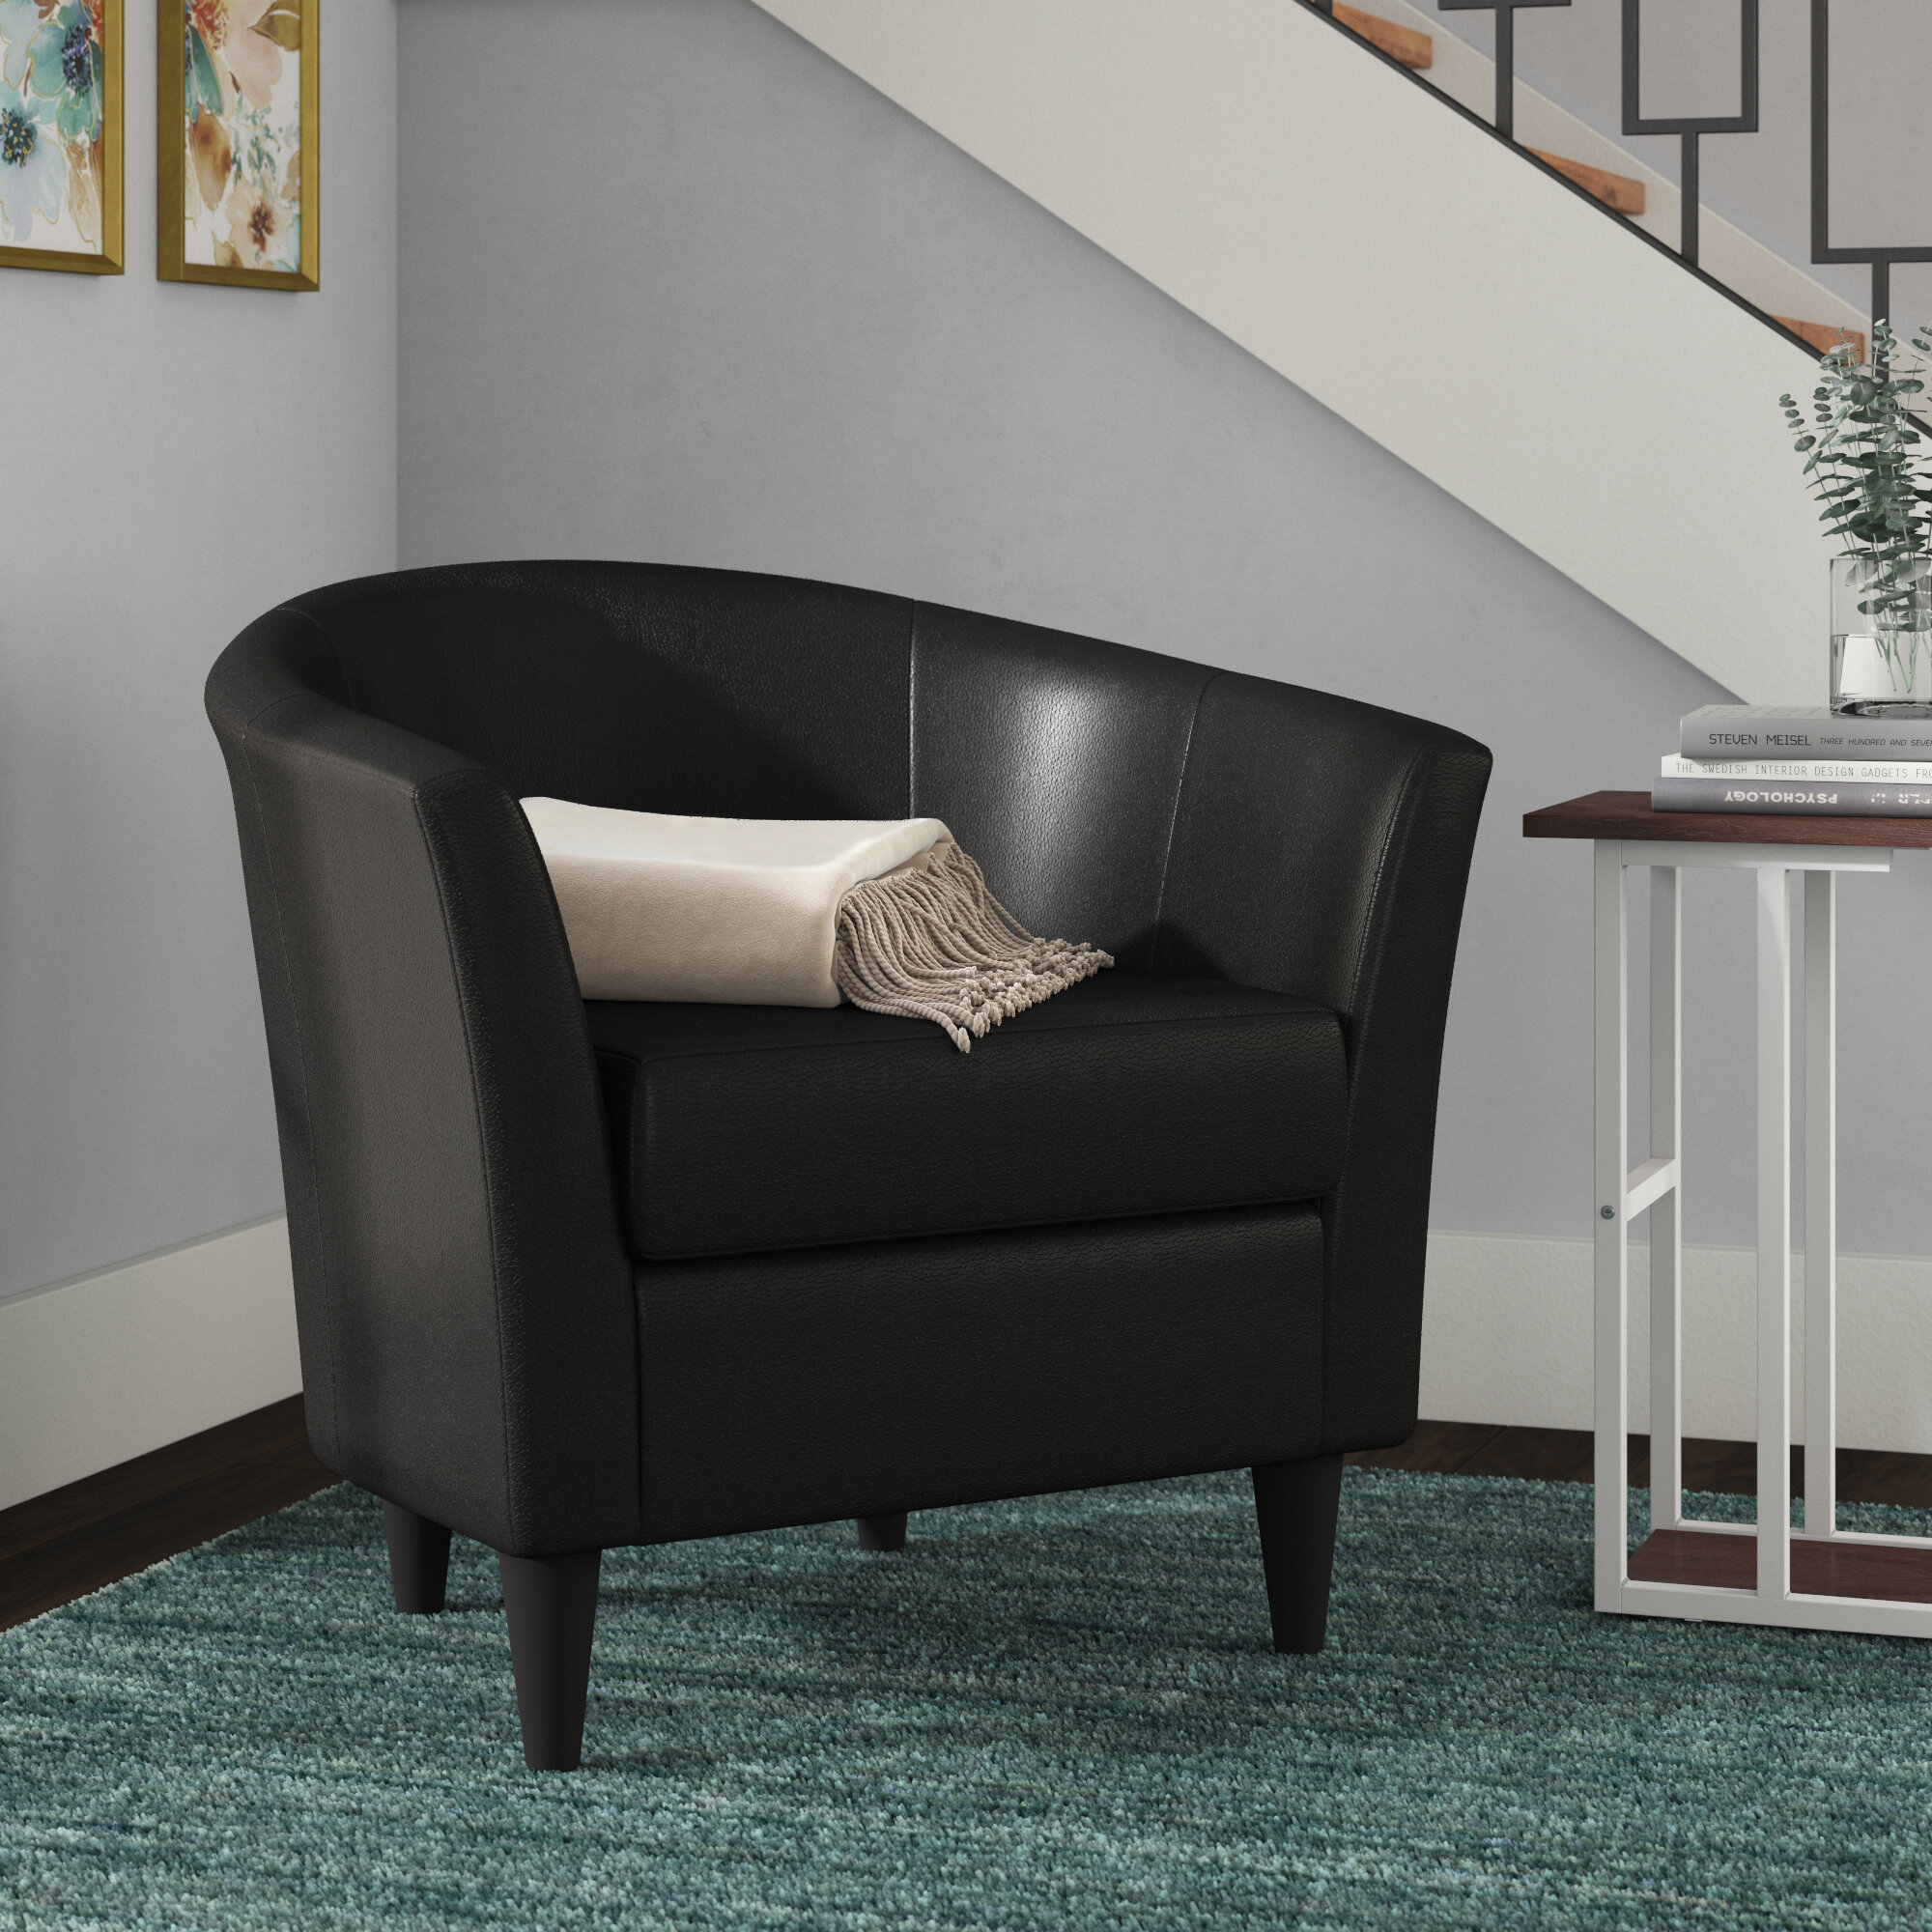 Faux Leather White Small Accent Chairs You'Ll Love In 2021 Throughout Gilad Faux Leather Barrel Chairs (View 9 of 15)